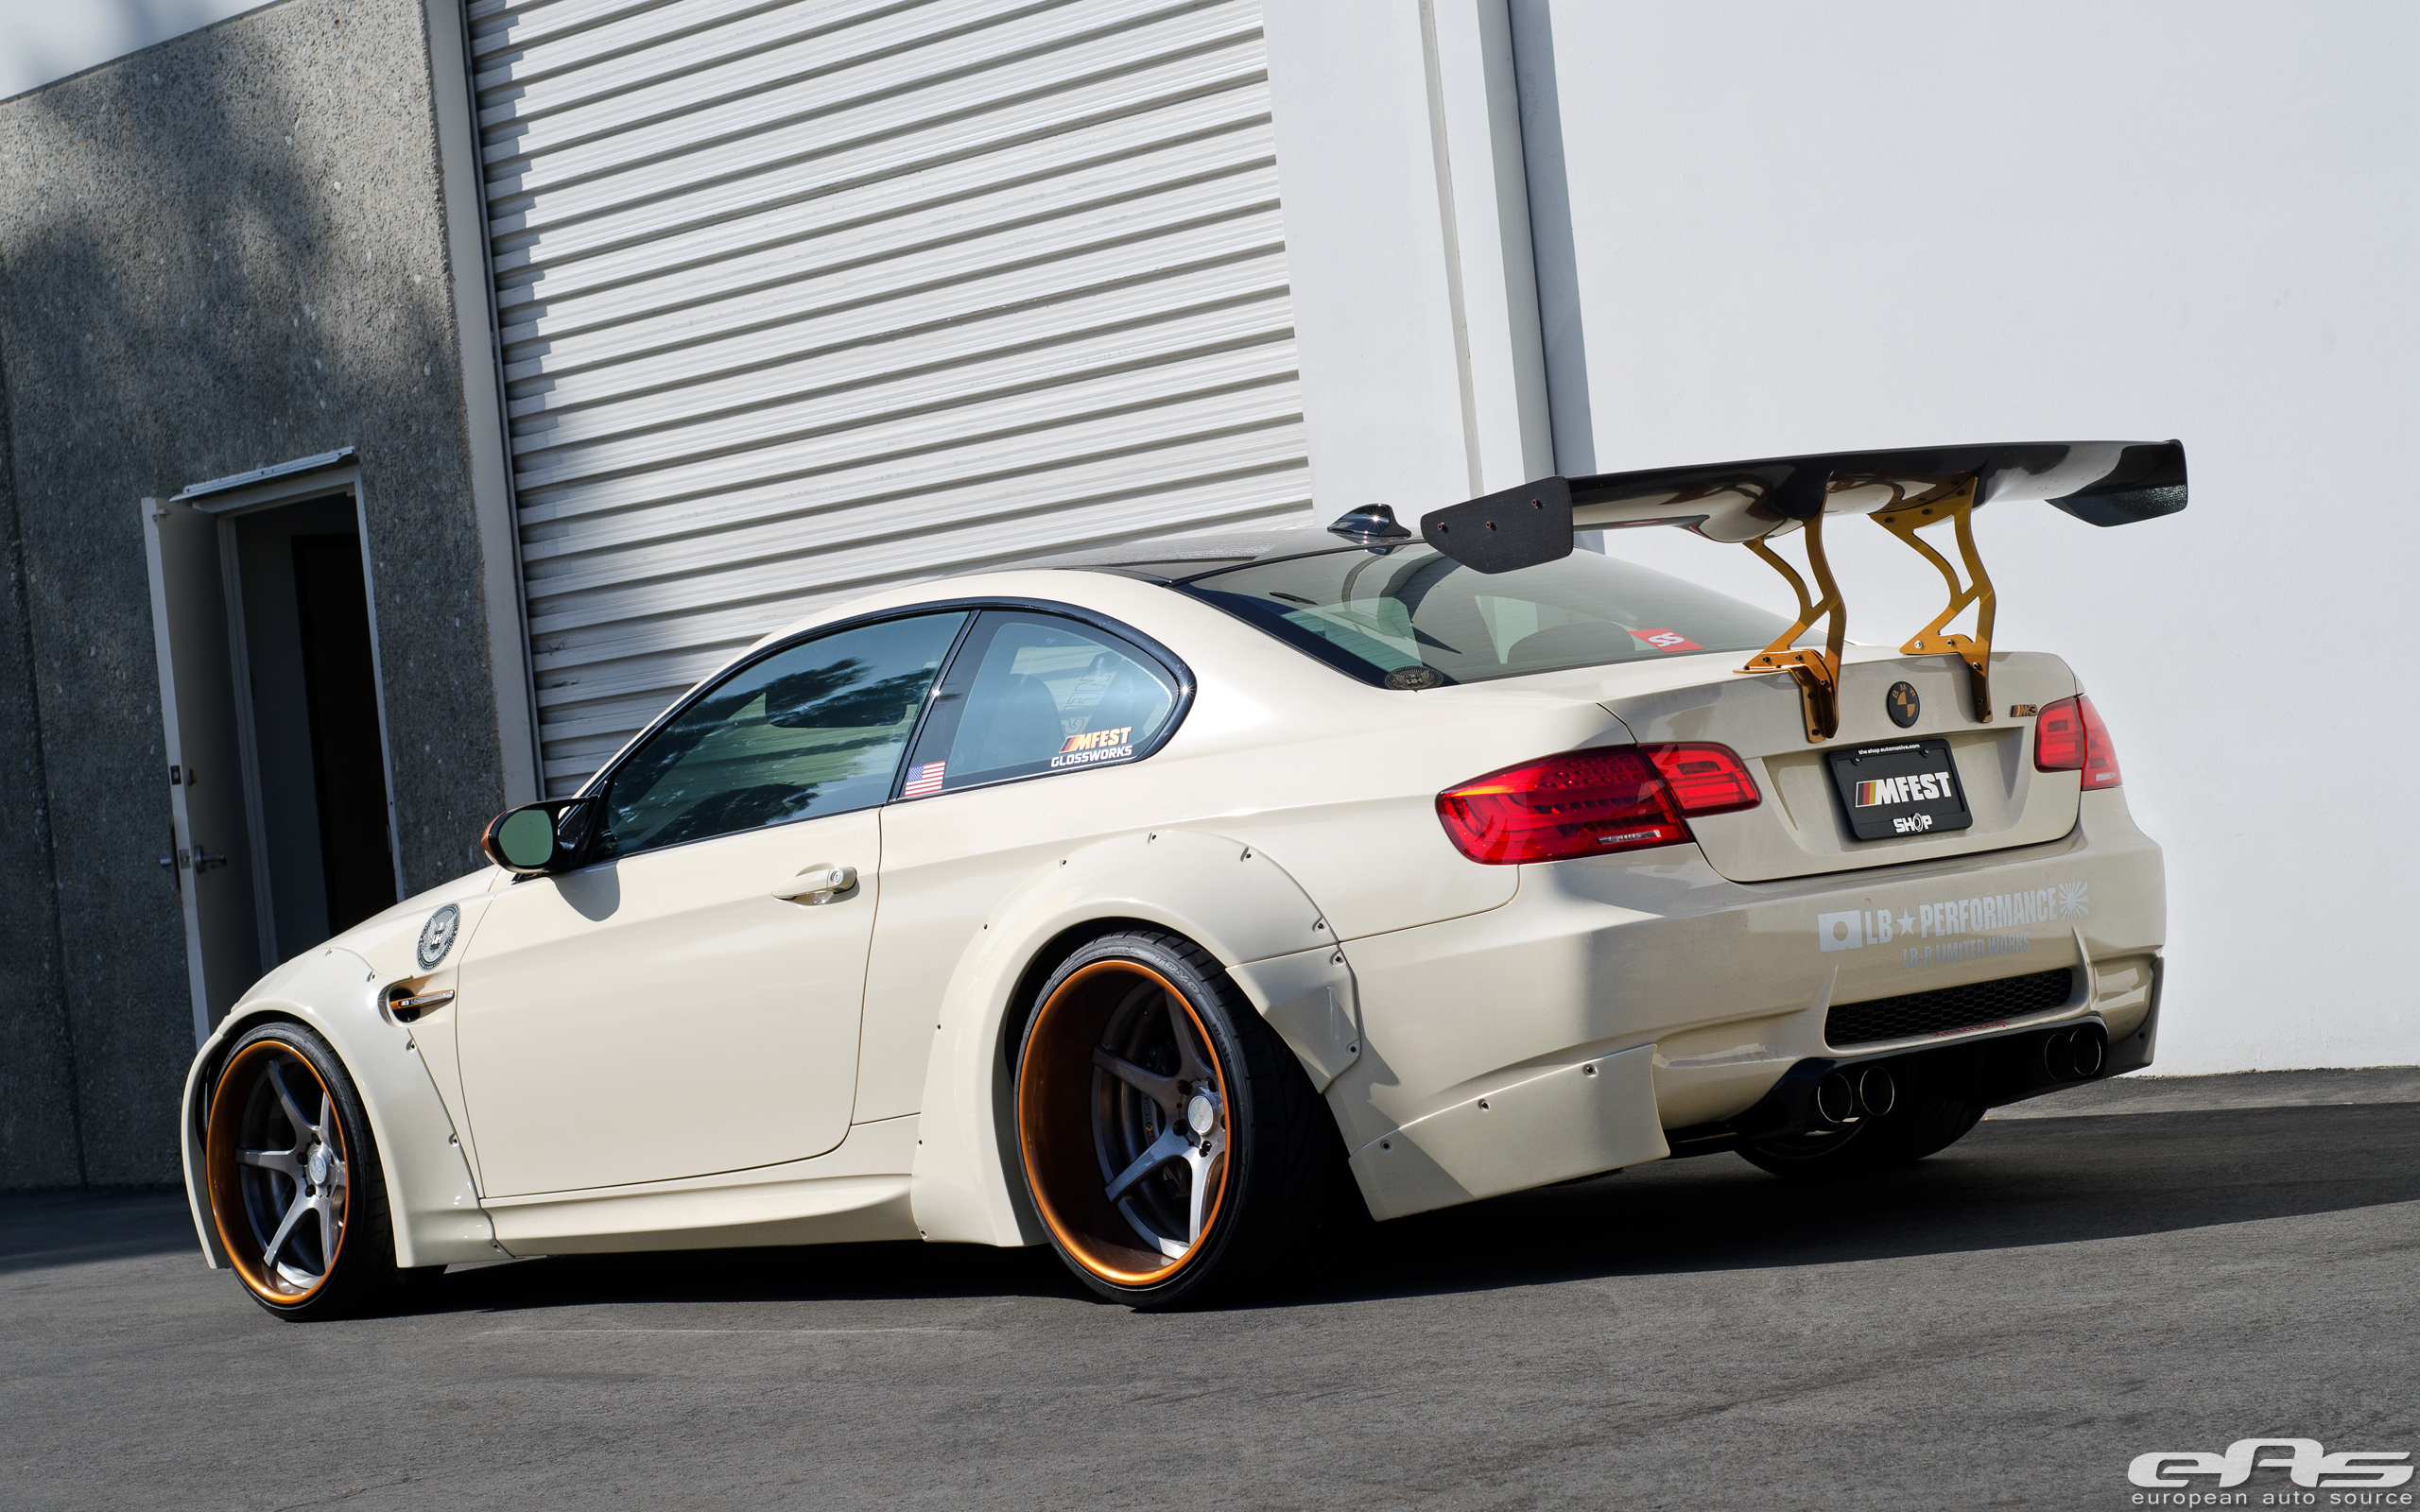 Mfest Liberty Walk Vf620 E92 M3 Bmw Performance Parts Services